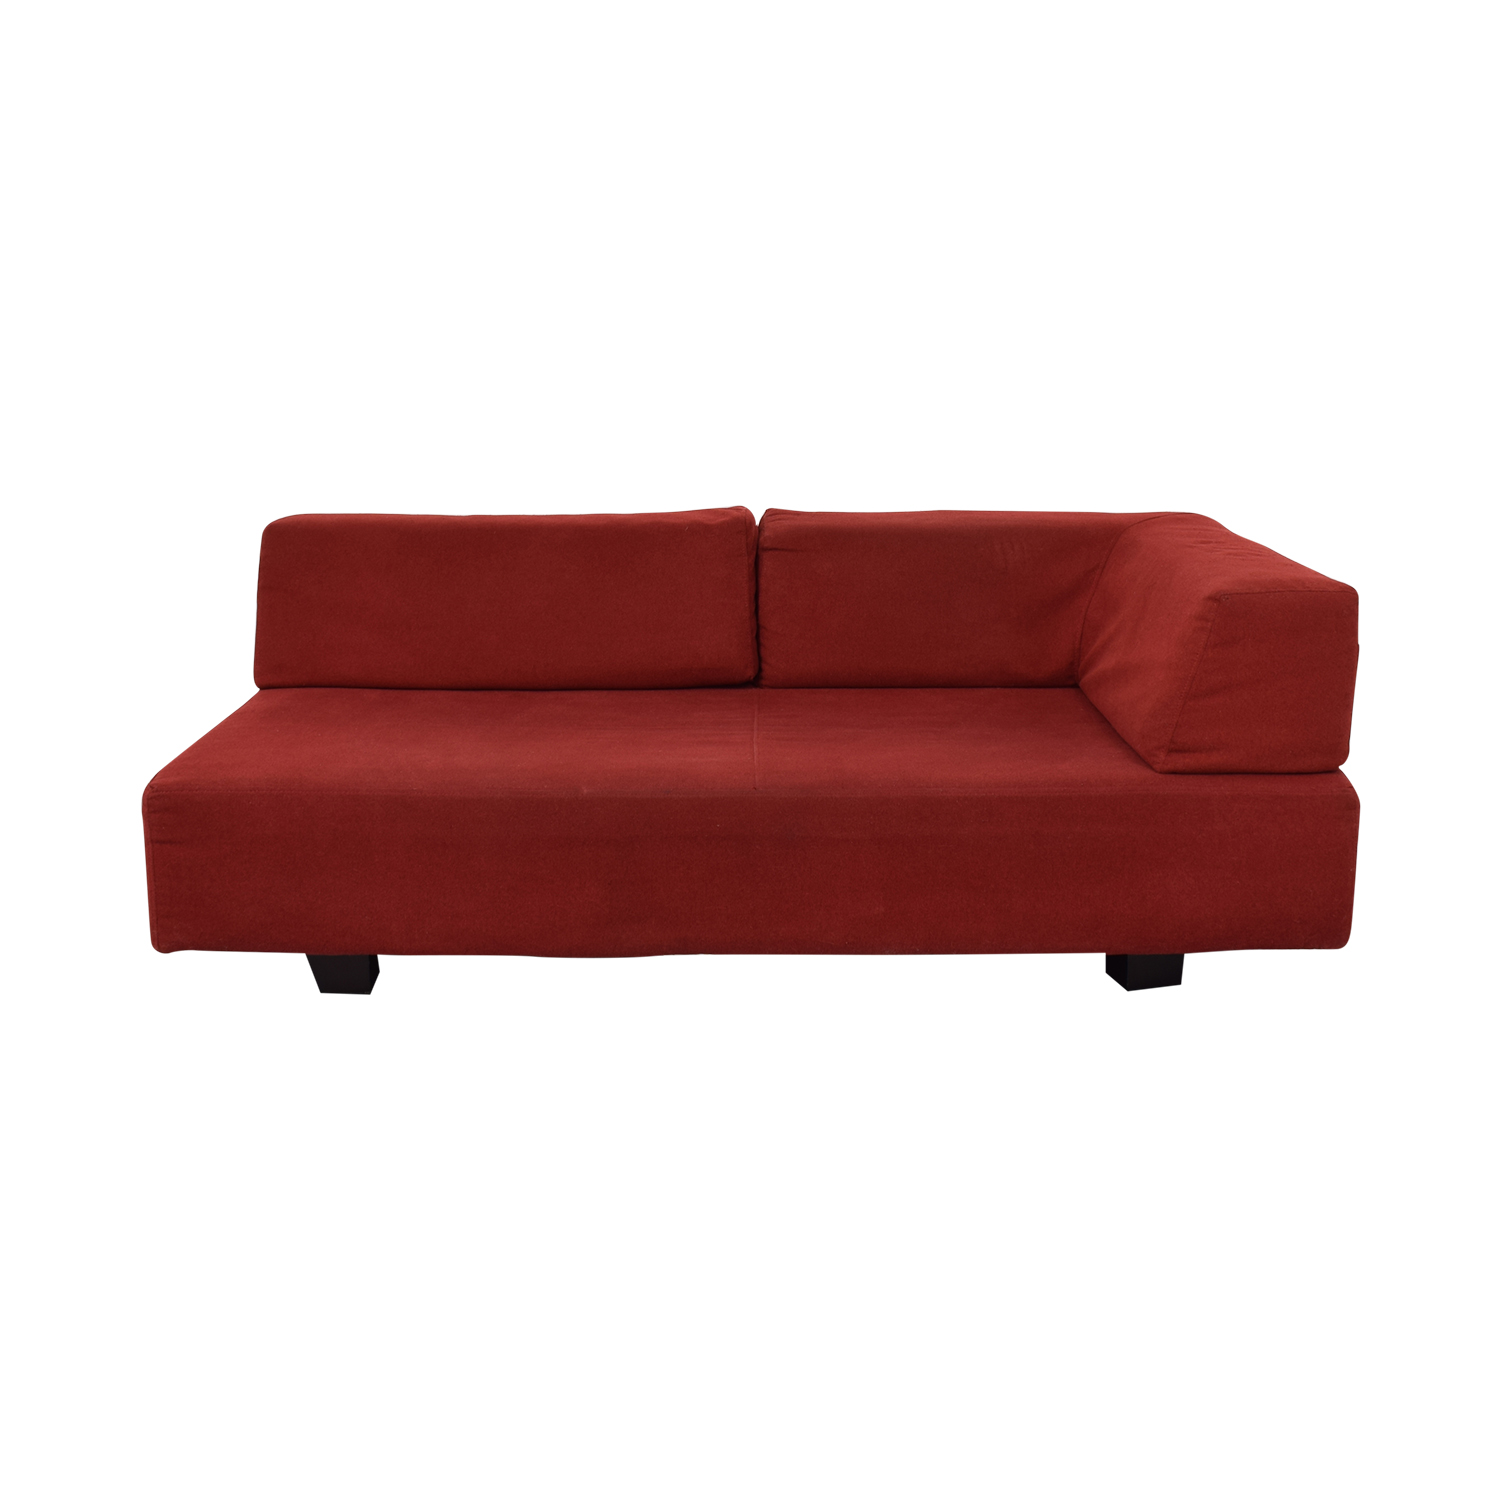 West Elm West Elm Red Chaise dimensions